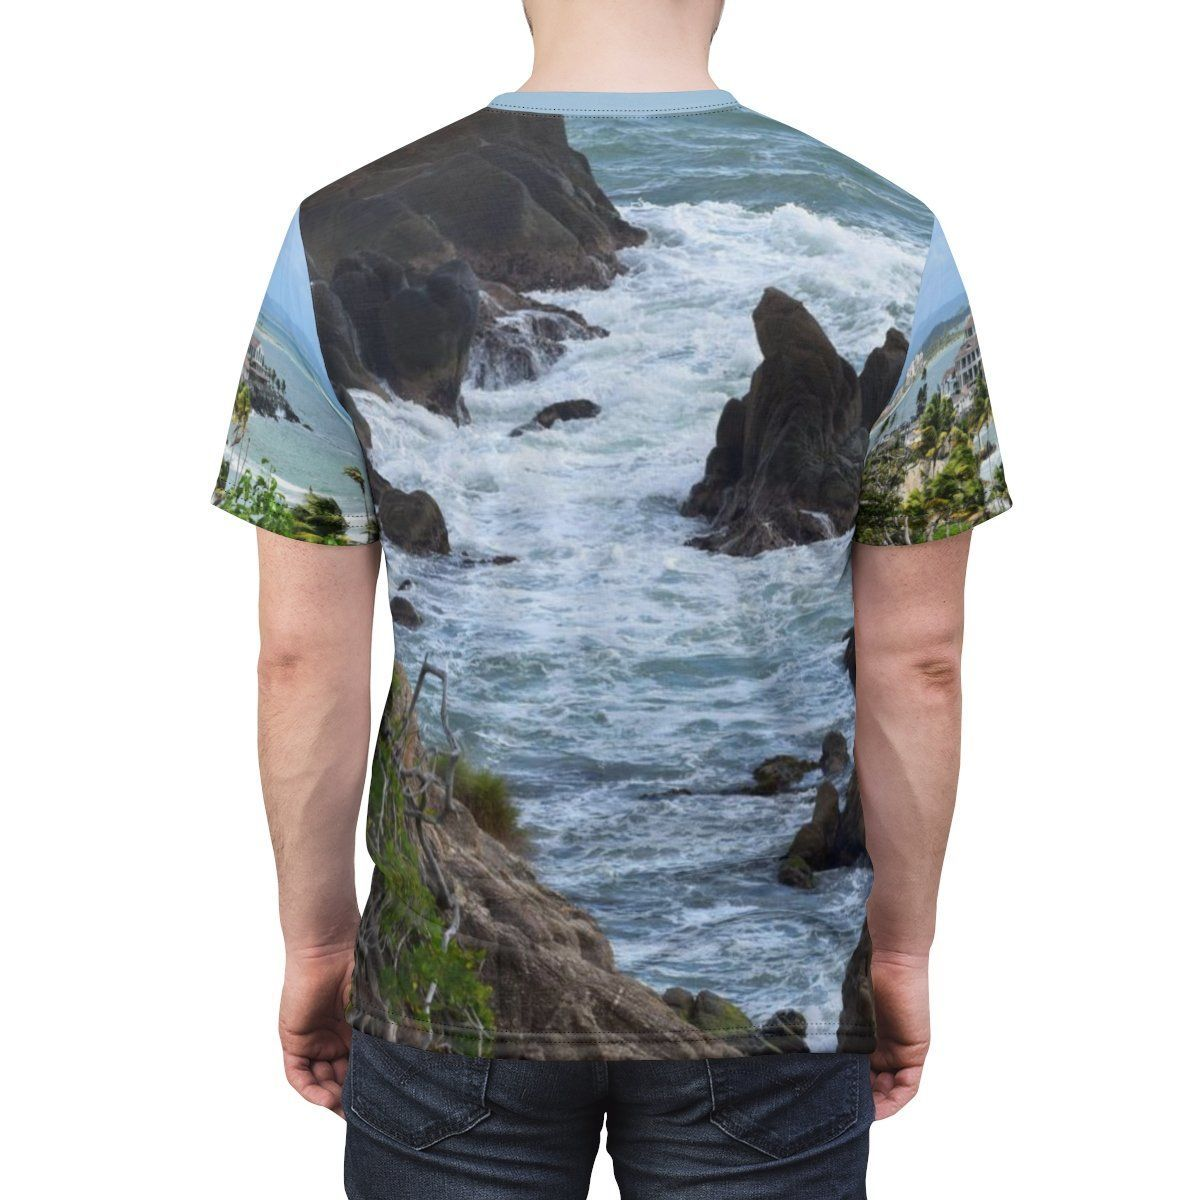 Unisex AOP Cut & Sew Tee - Beach and Coast - Palmas de Mar Housing complex - Puerto Rico All Over Prints Printify